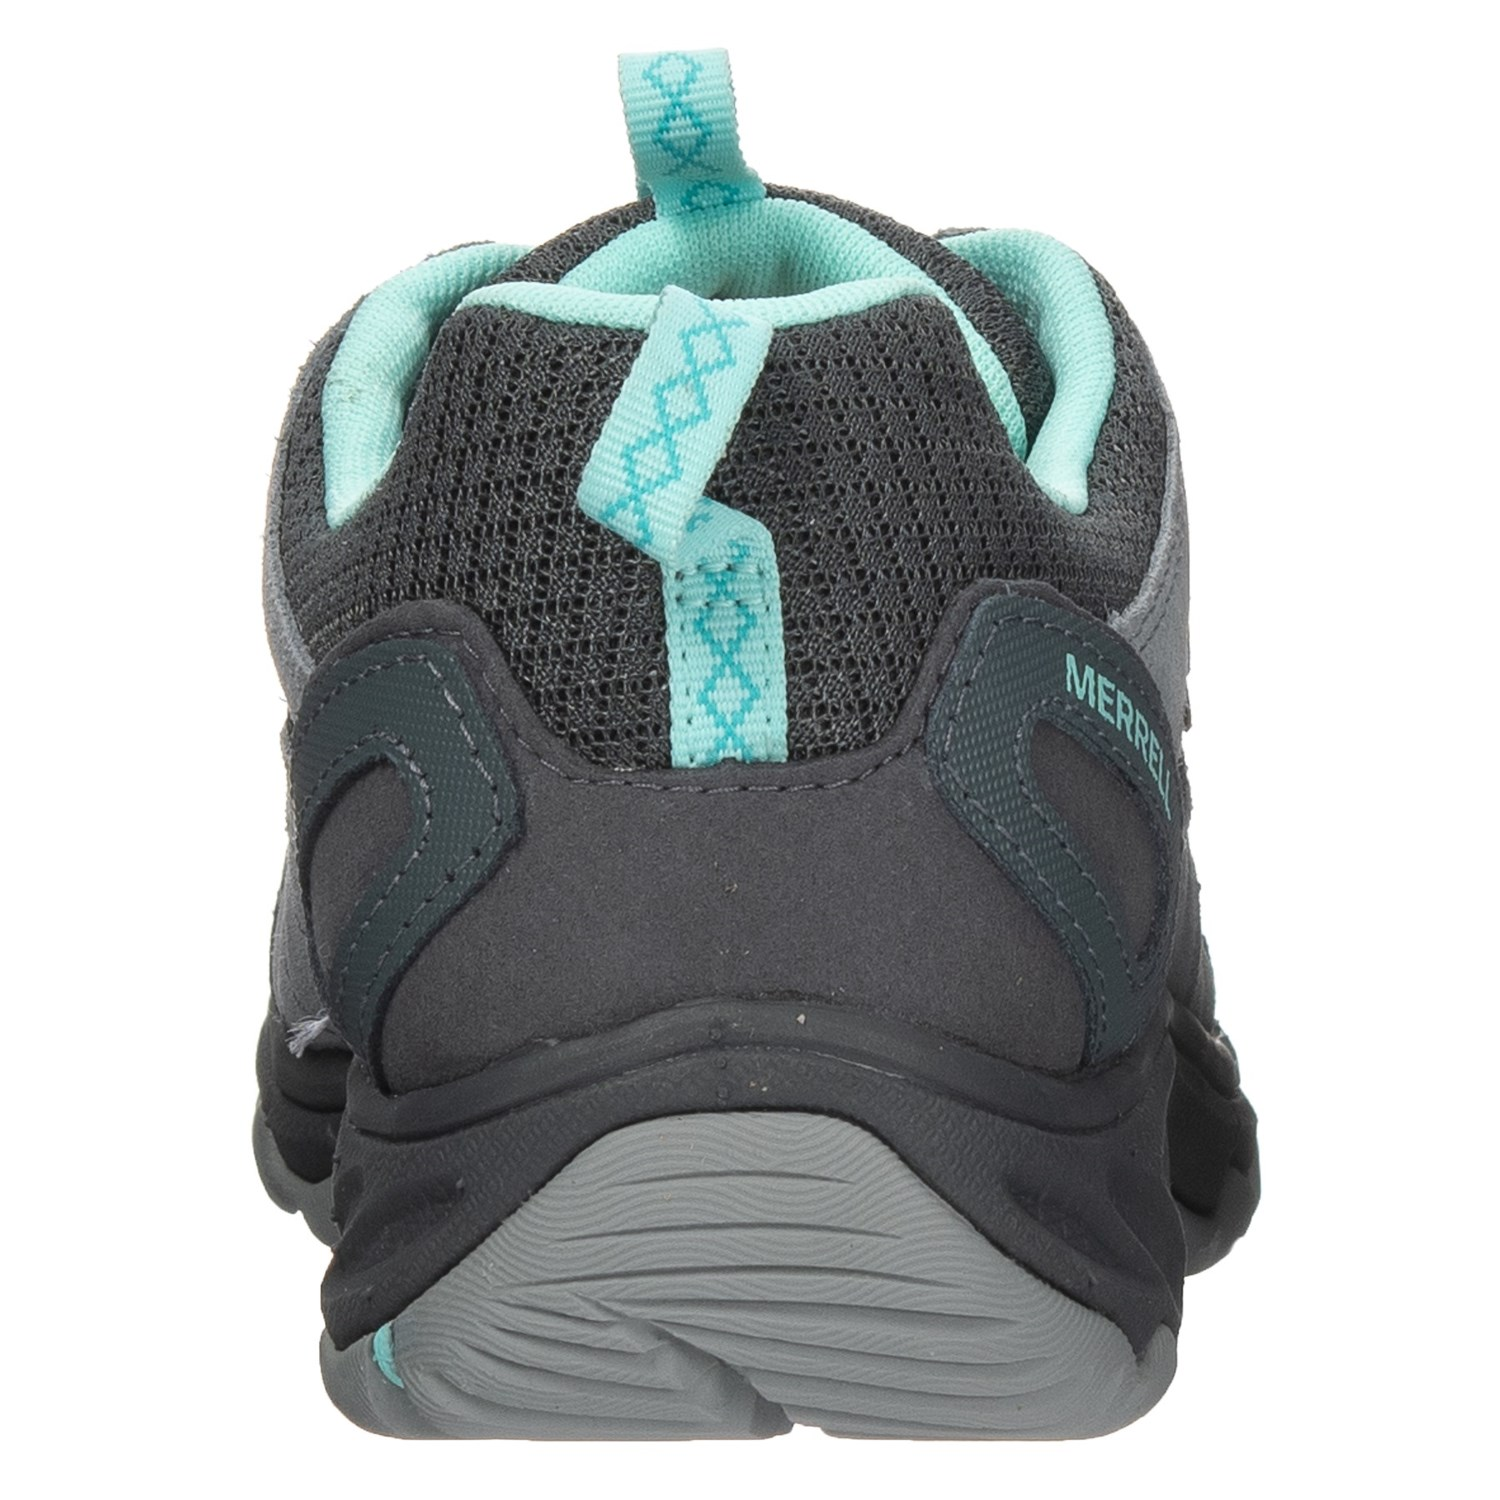 c587b48b7 Merrell Avian Light 2 Vent Hiking Shoes - Waterproof (For Women)